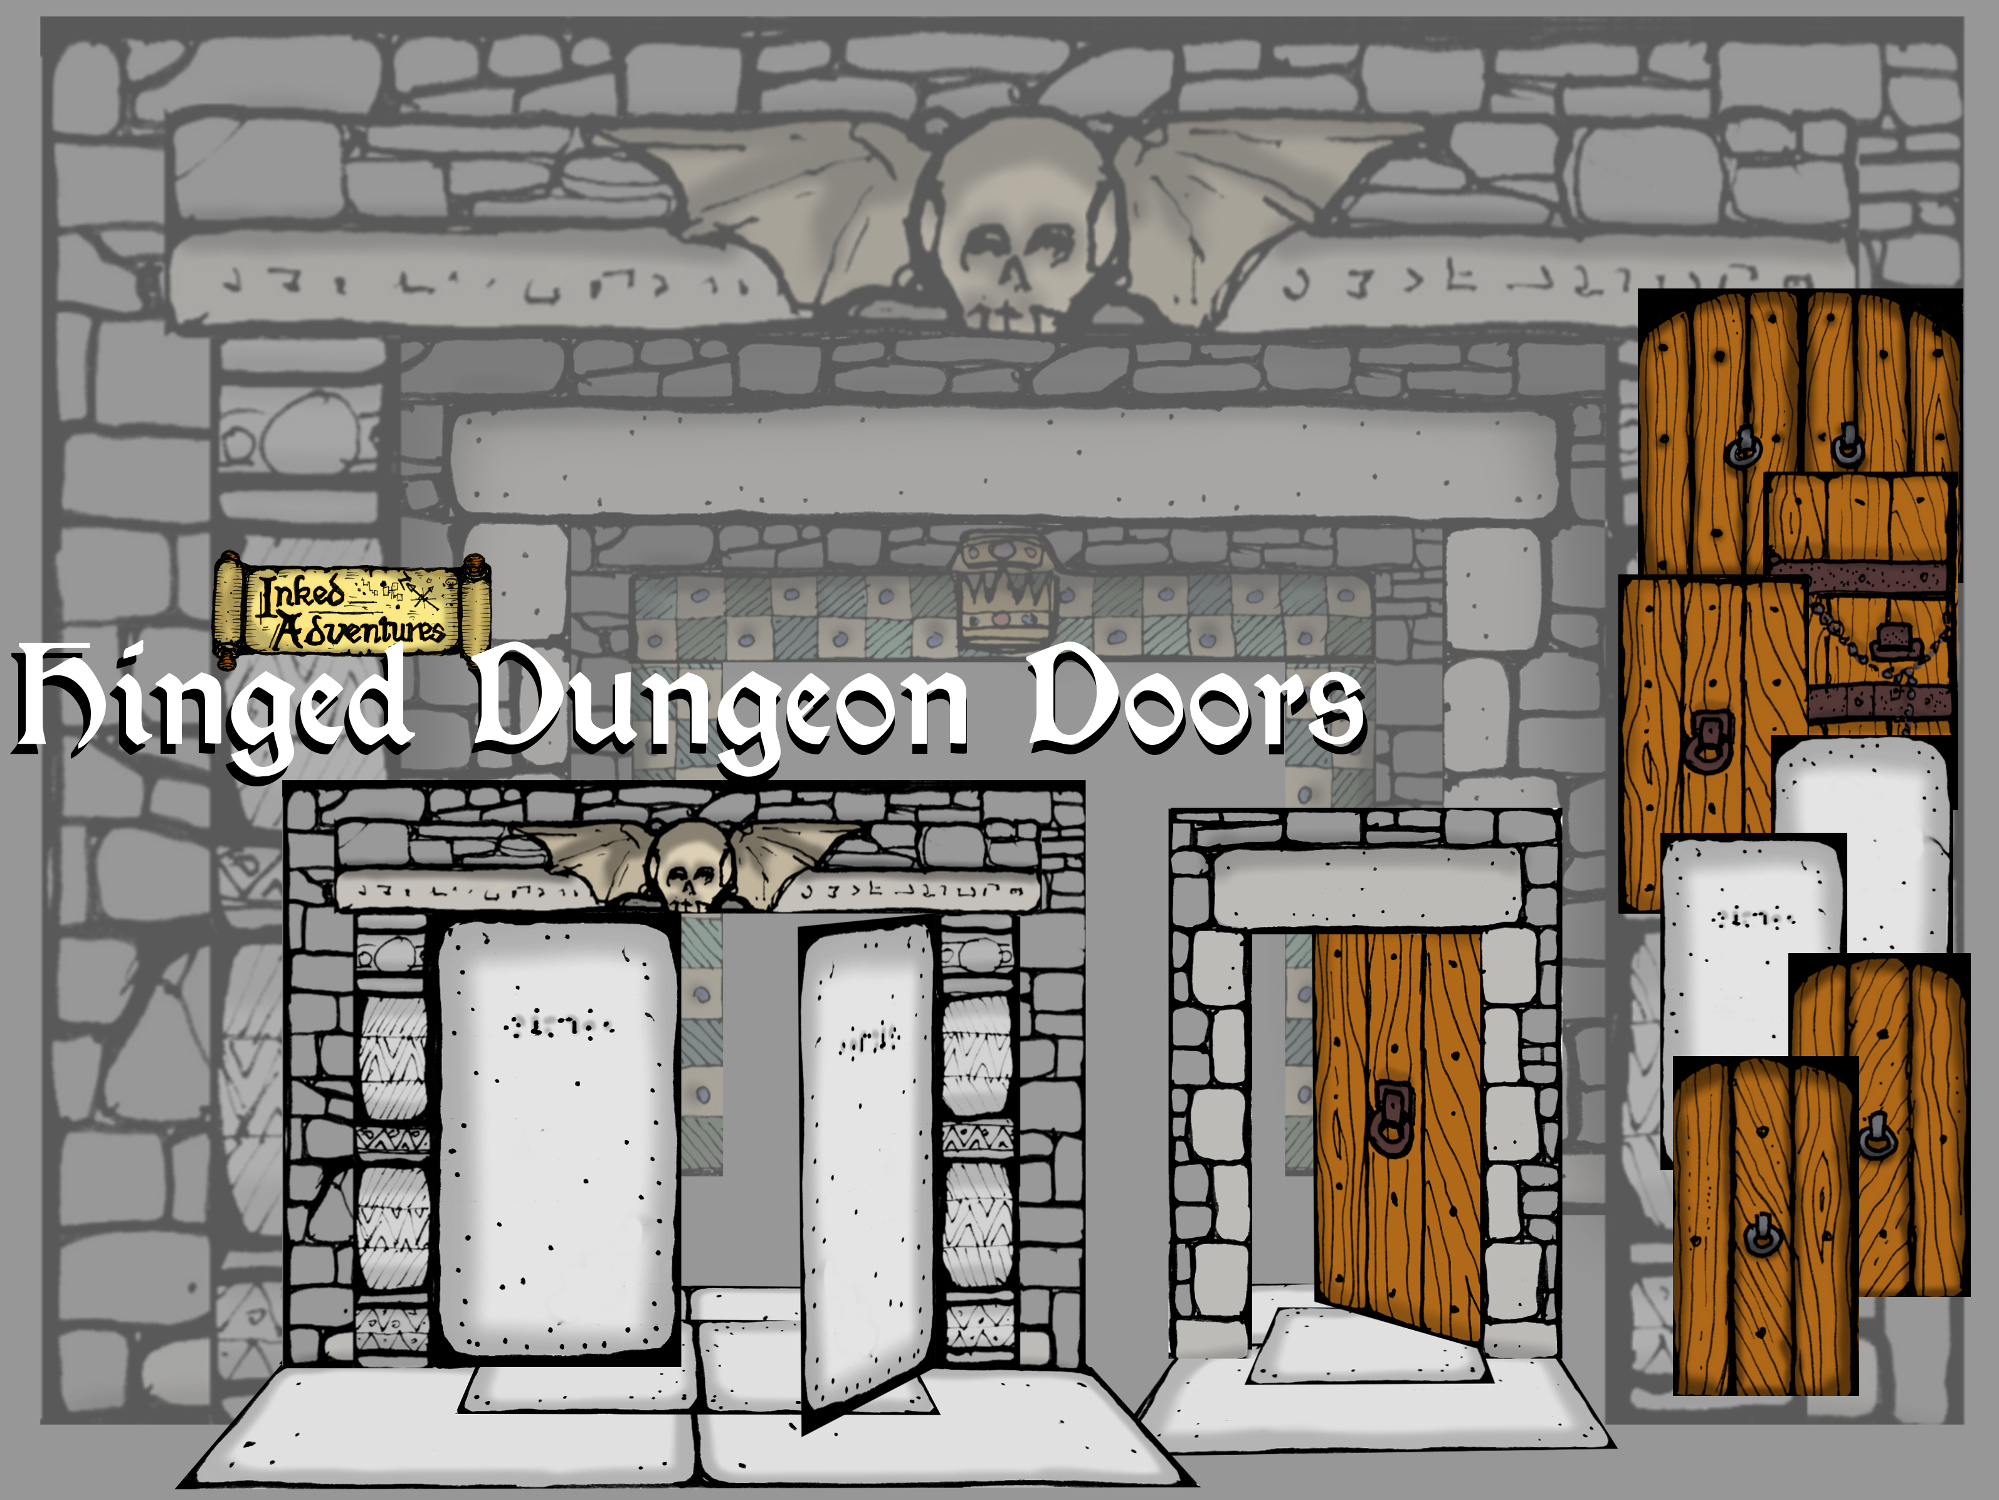 picture about Printable Dungeon Tiles Pdf identified as Hinged Dungeon Doorways - Inked Adventures